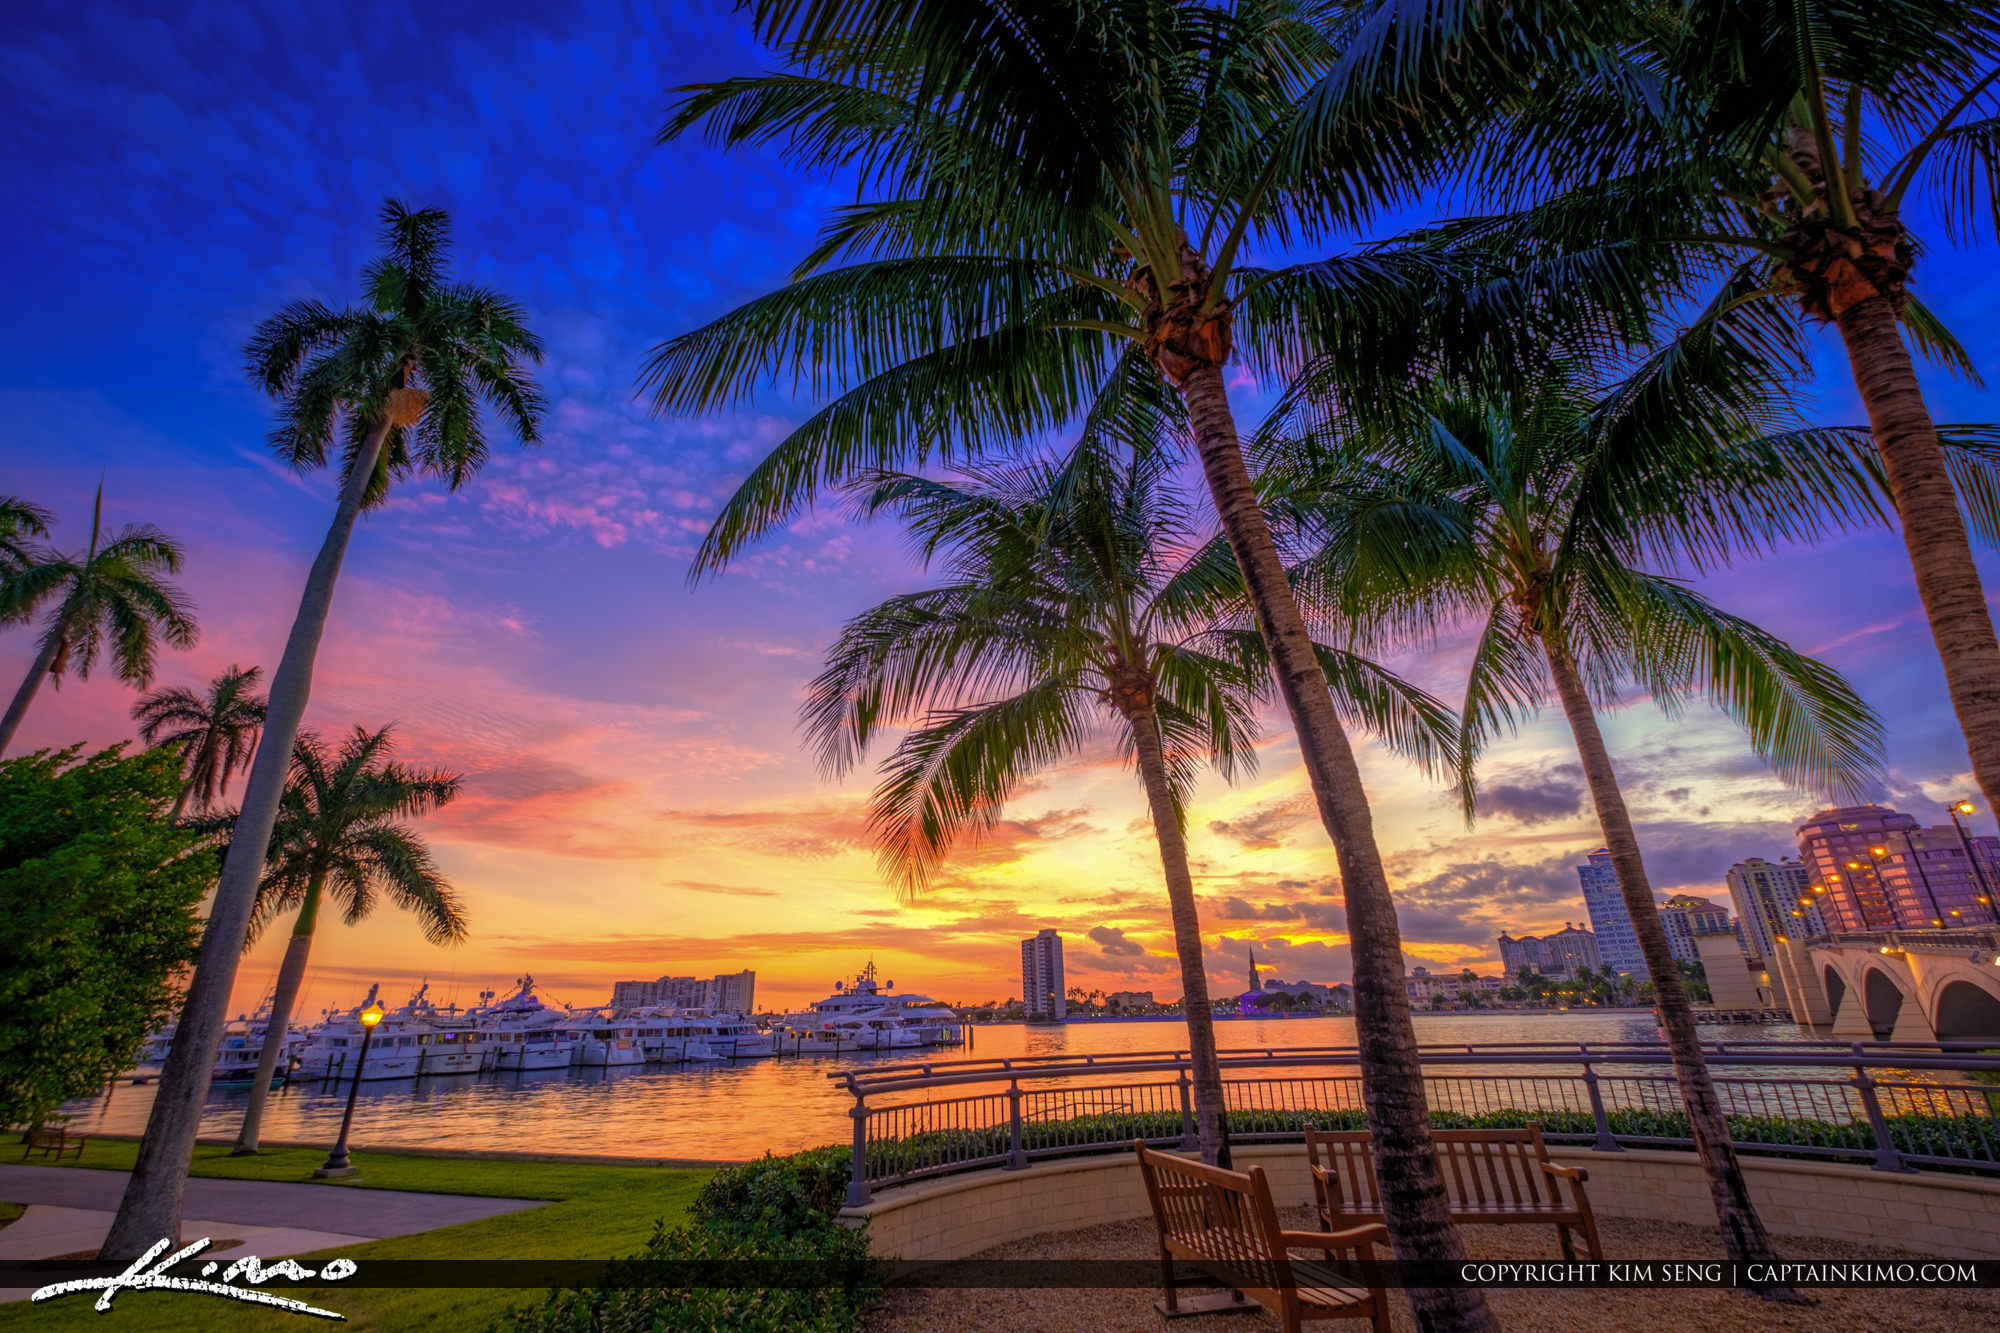 West Palm Beach Sunset Under Coconut Tree Waterway